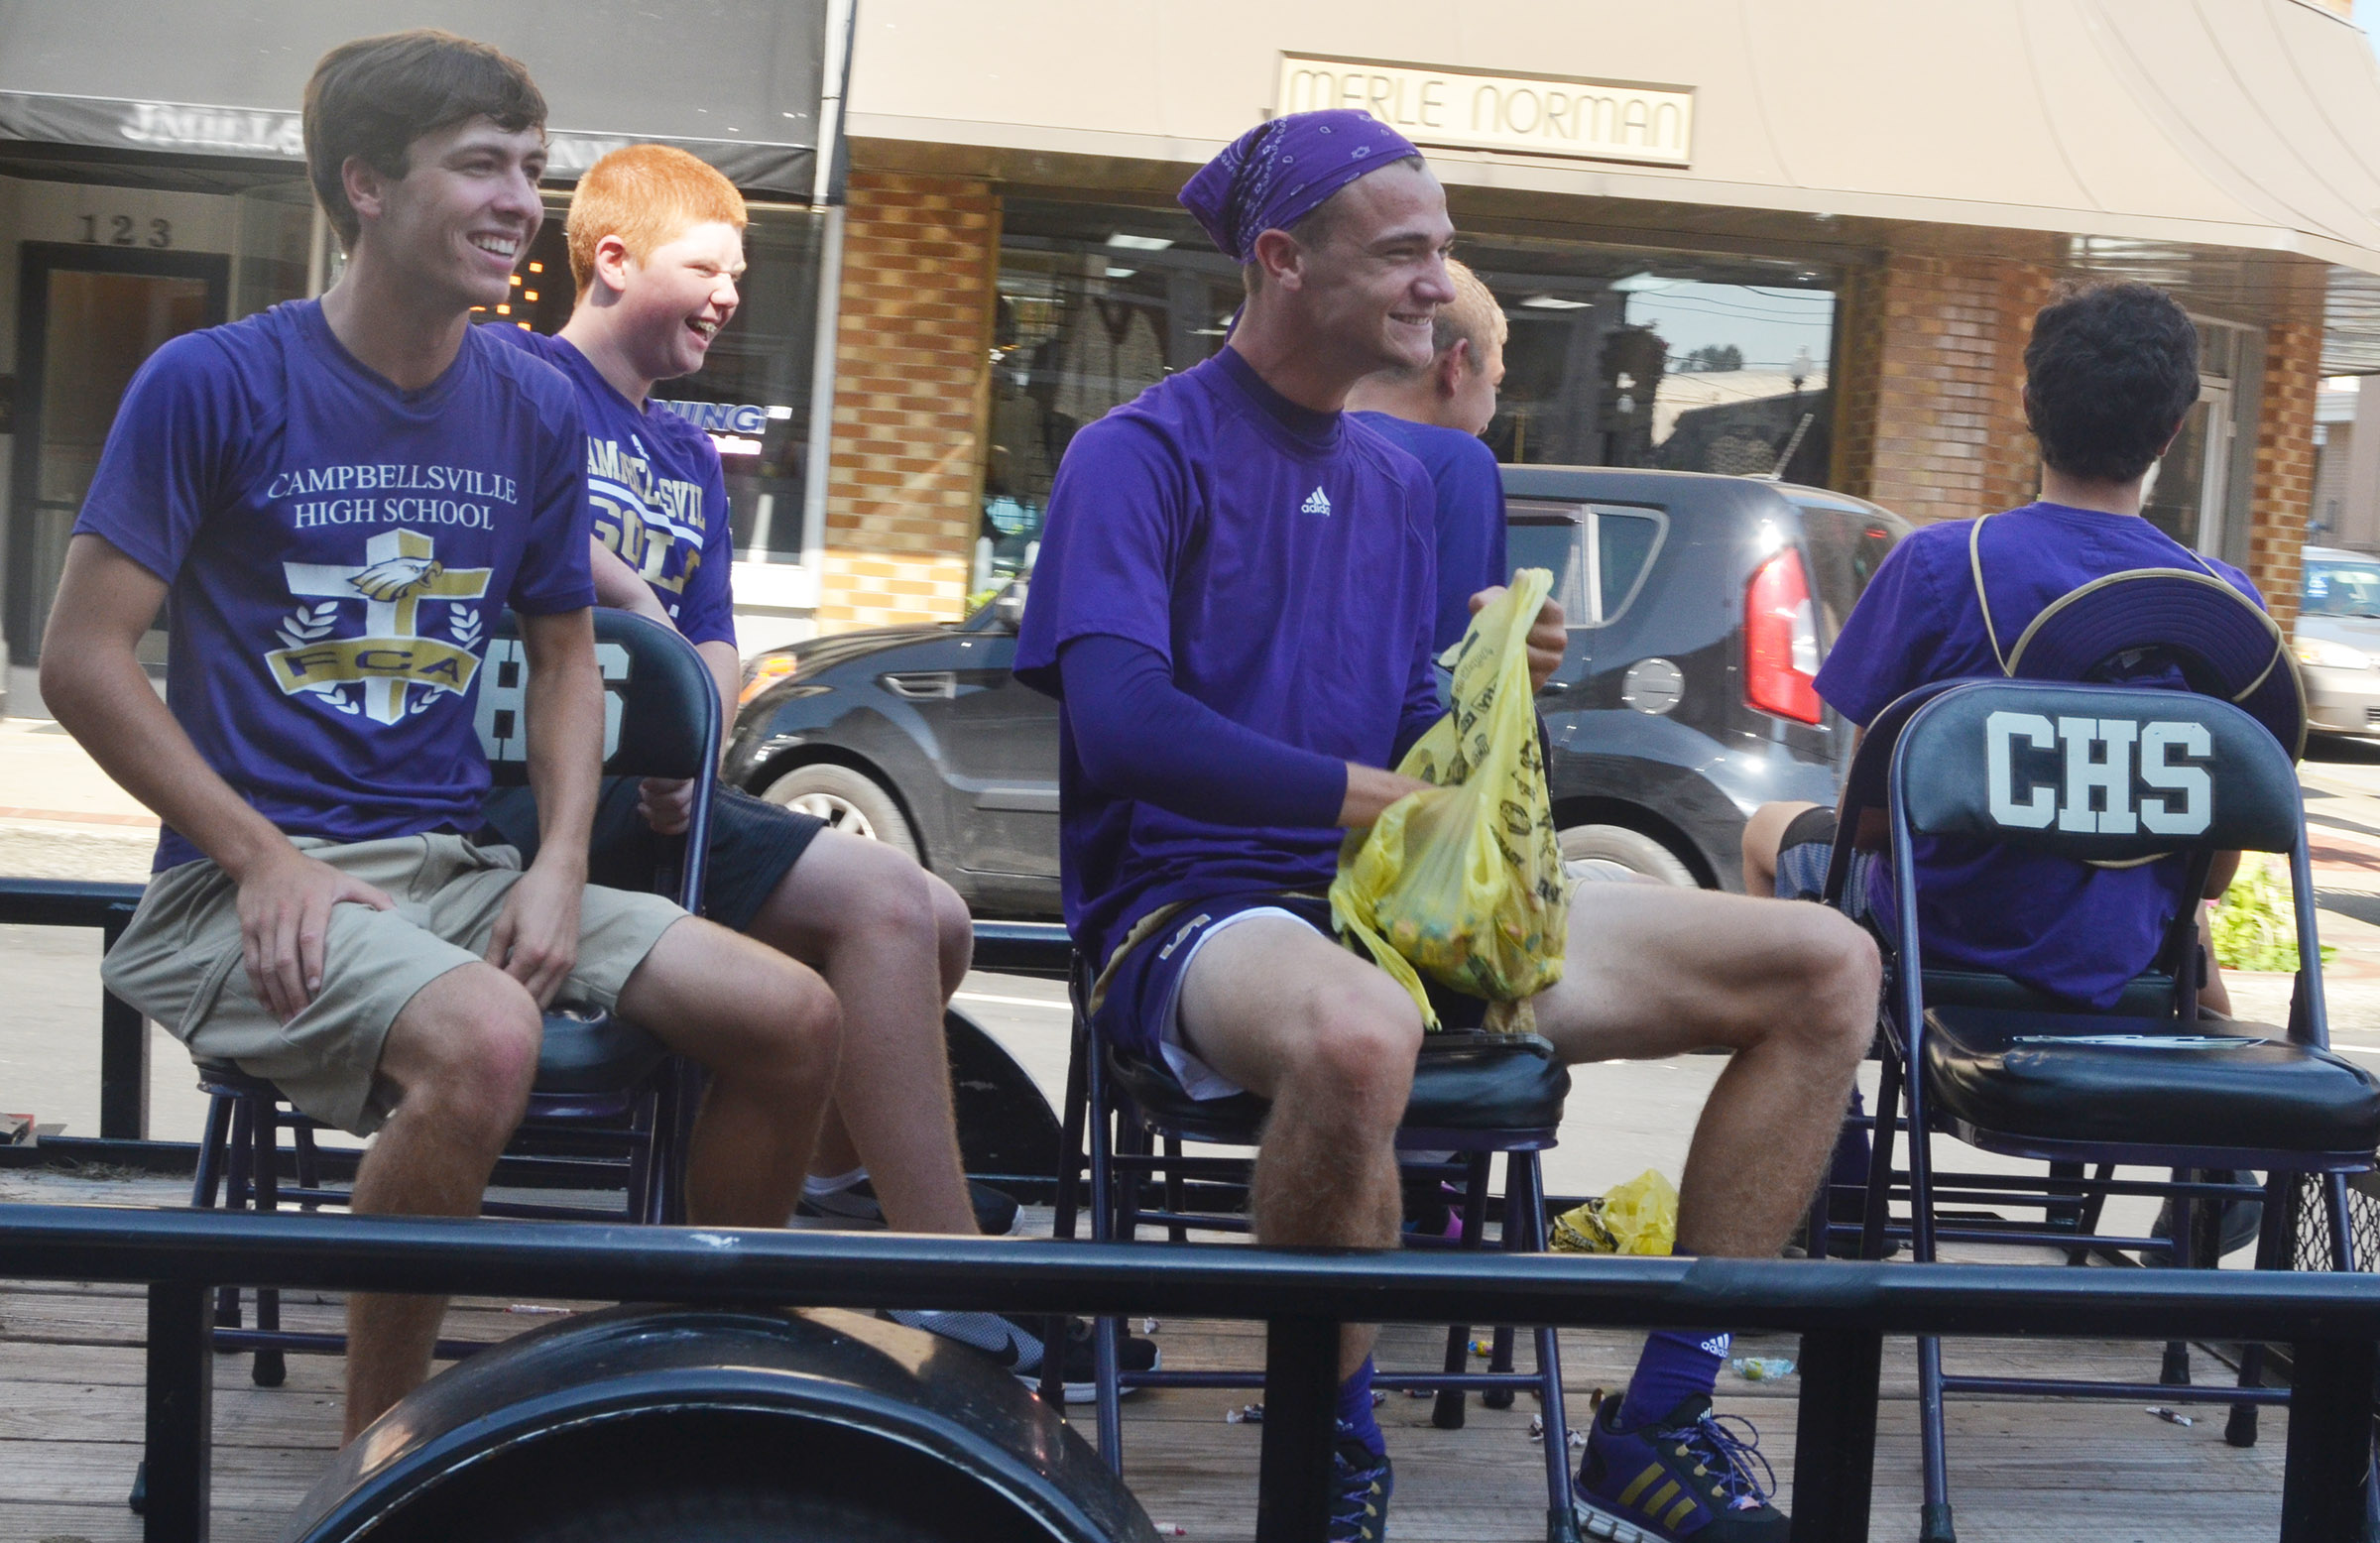 CHS boys' golf team members ride in the parade. From left are junior Layton Hord, freshman Colin Harris and senior Connor Wilson.